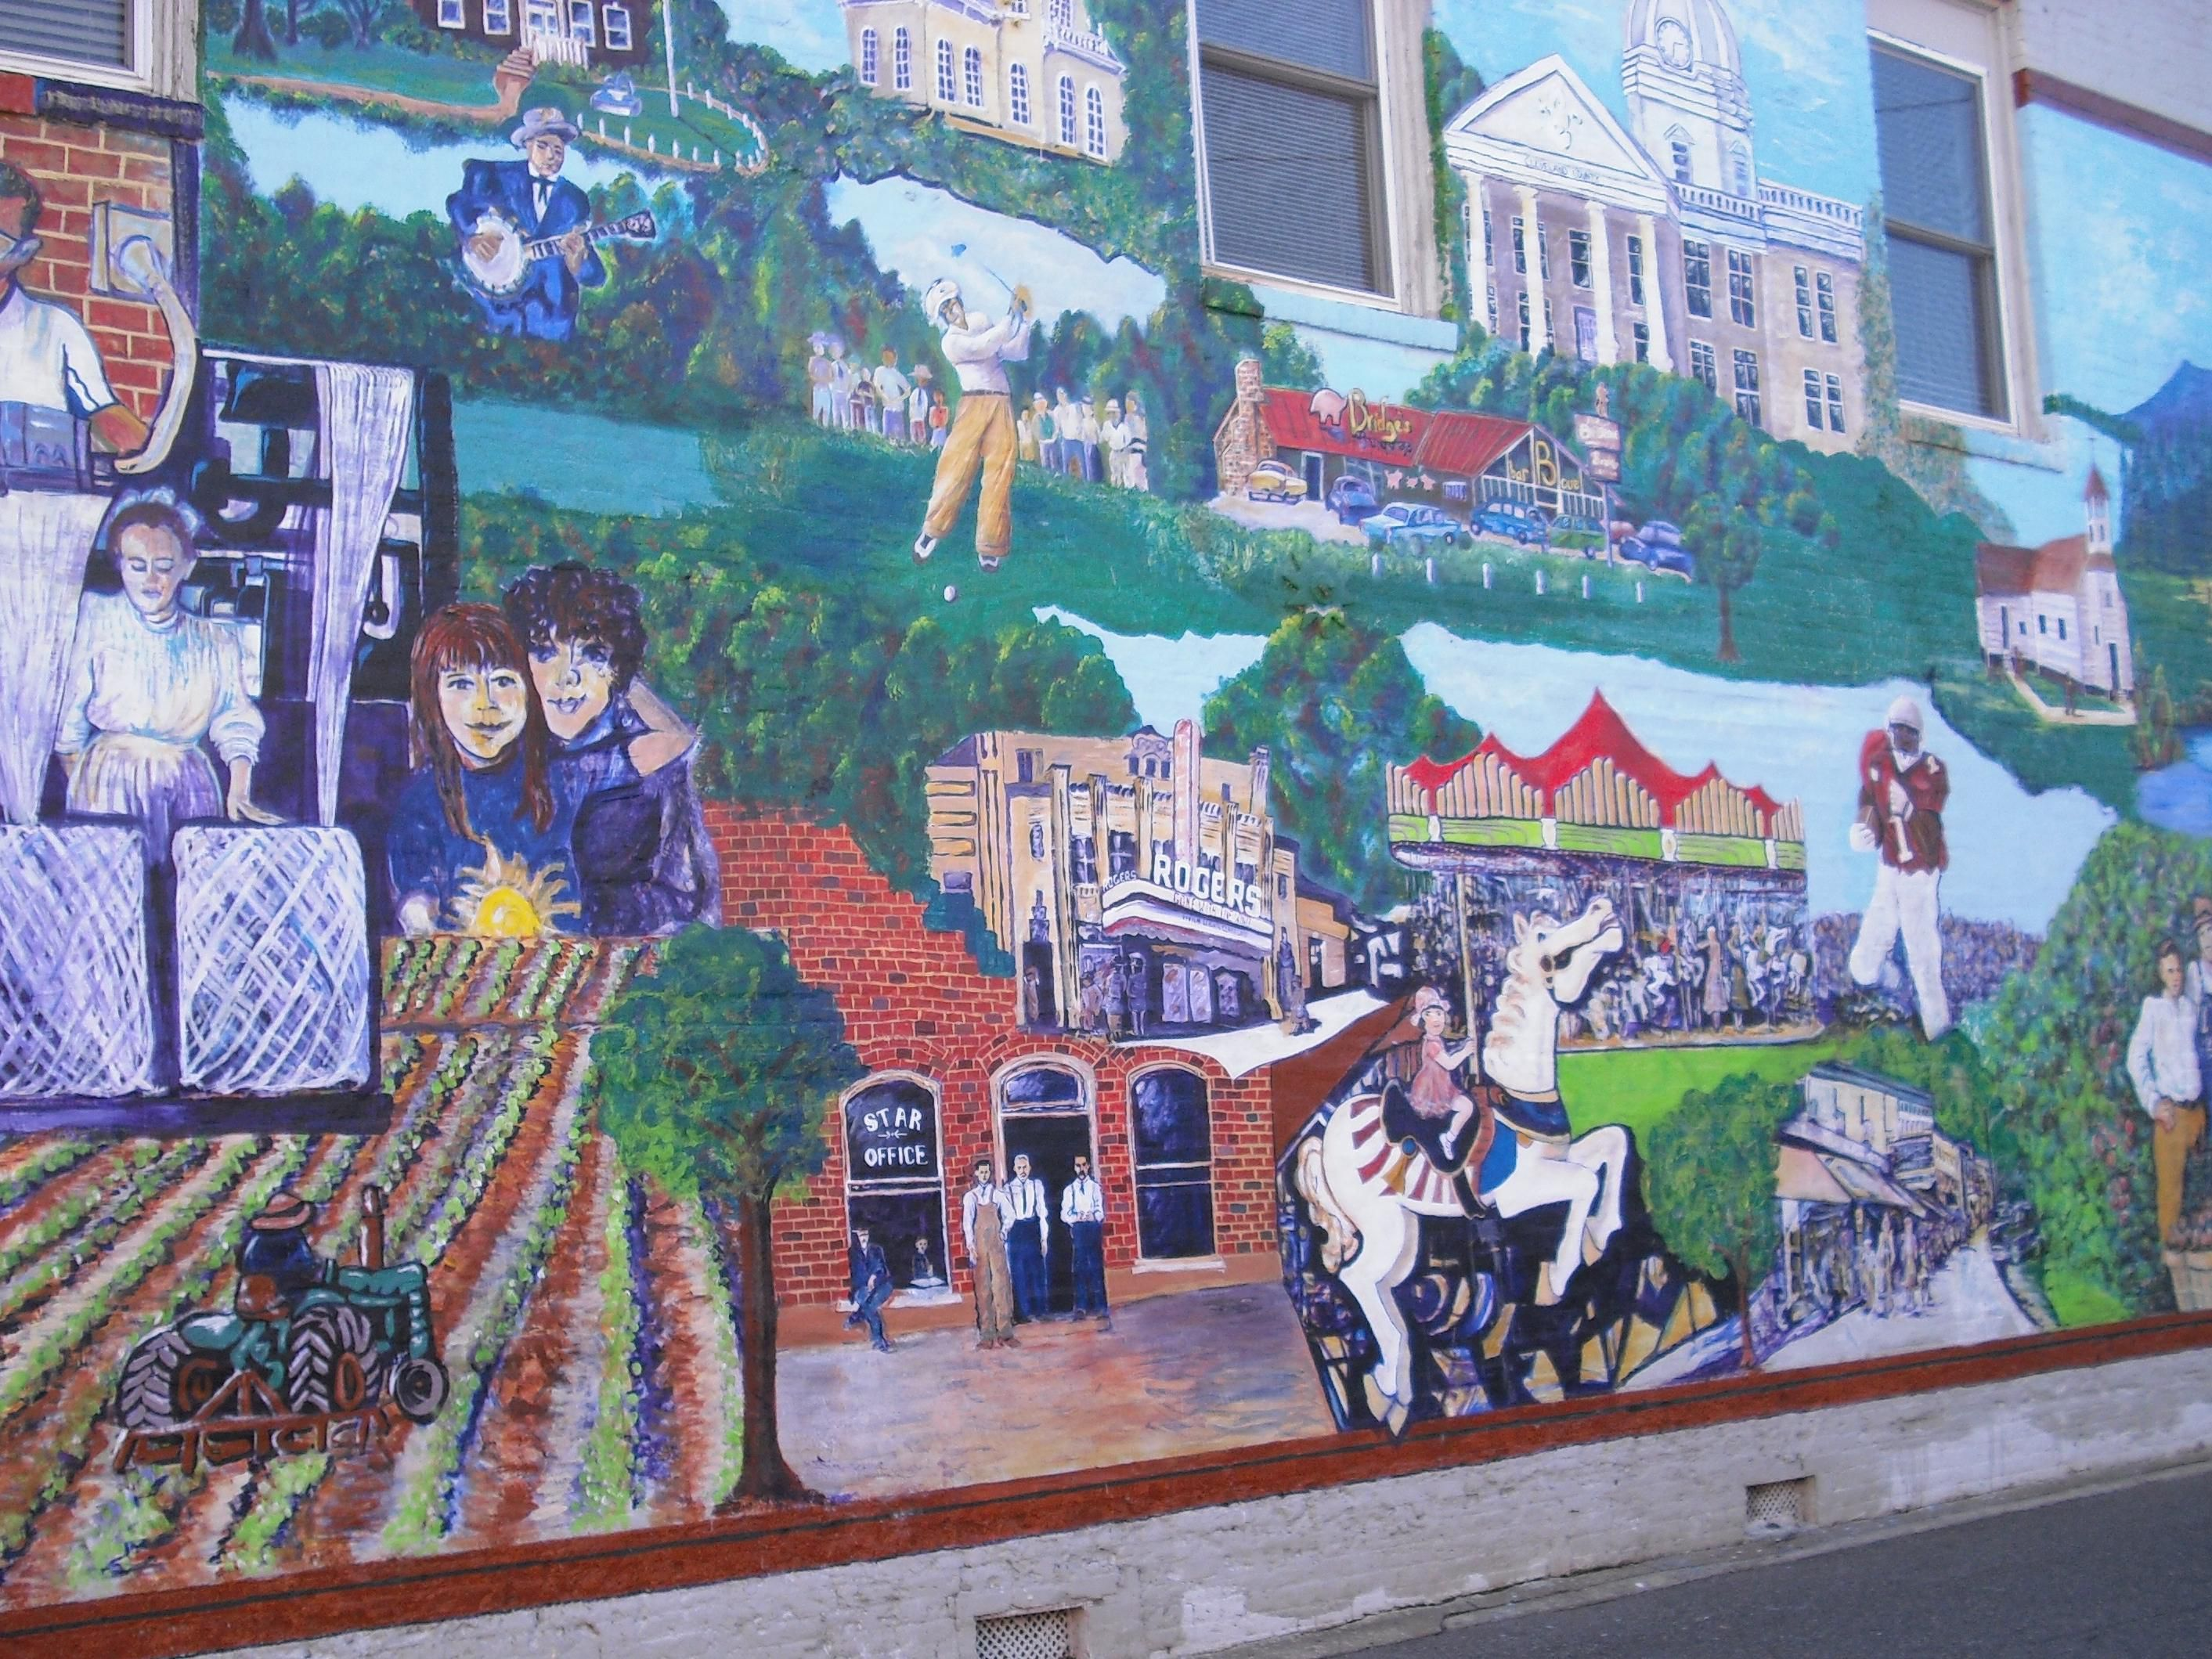 One of 4 Hand Painted Murals in our County!